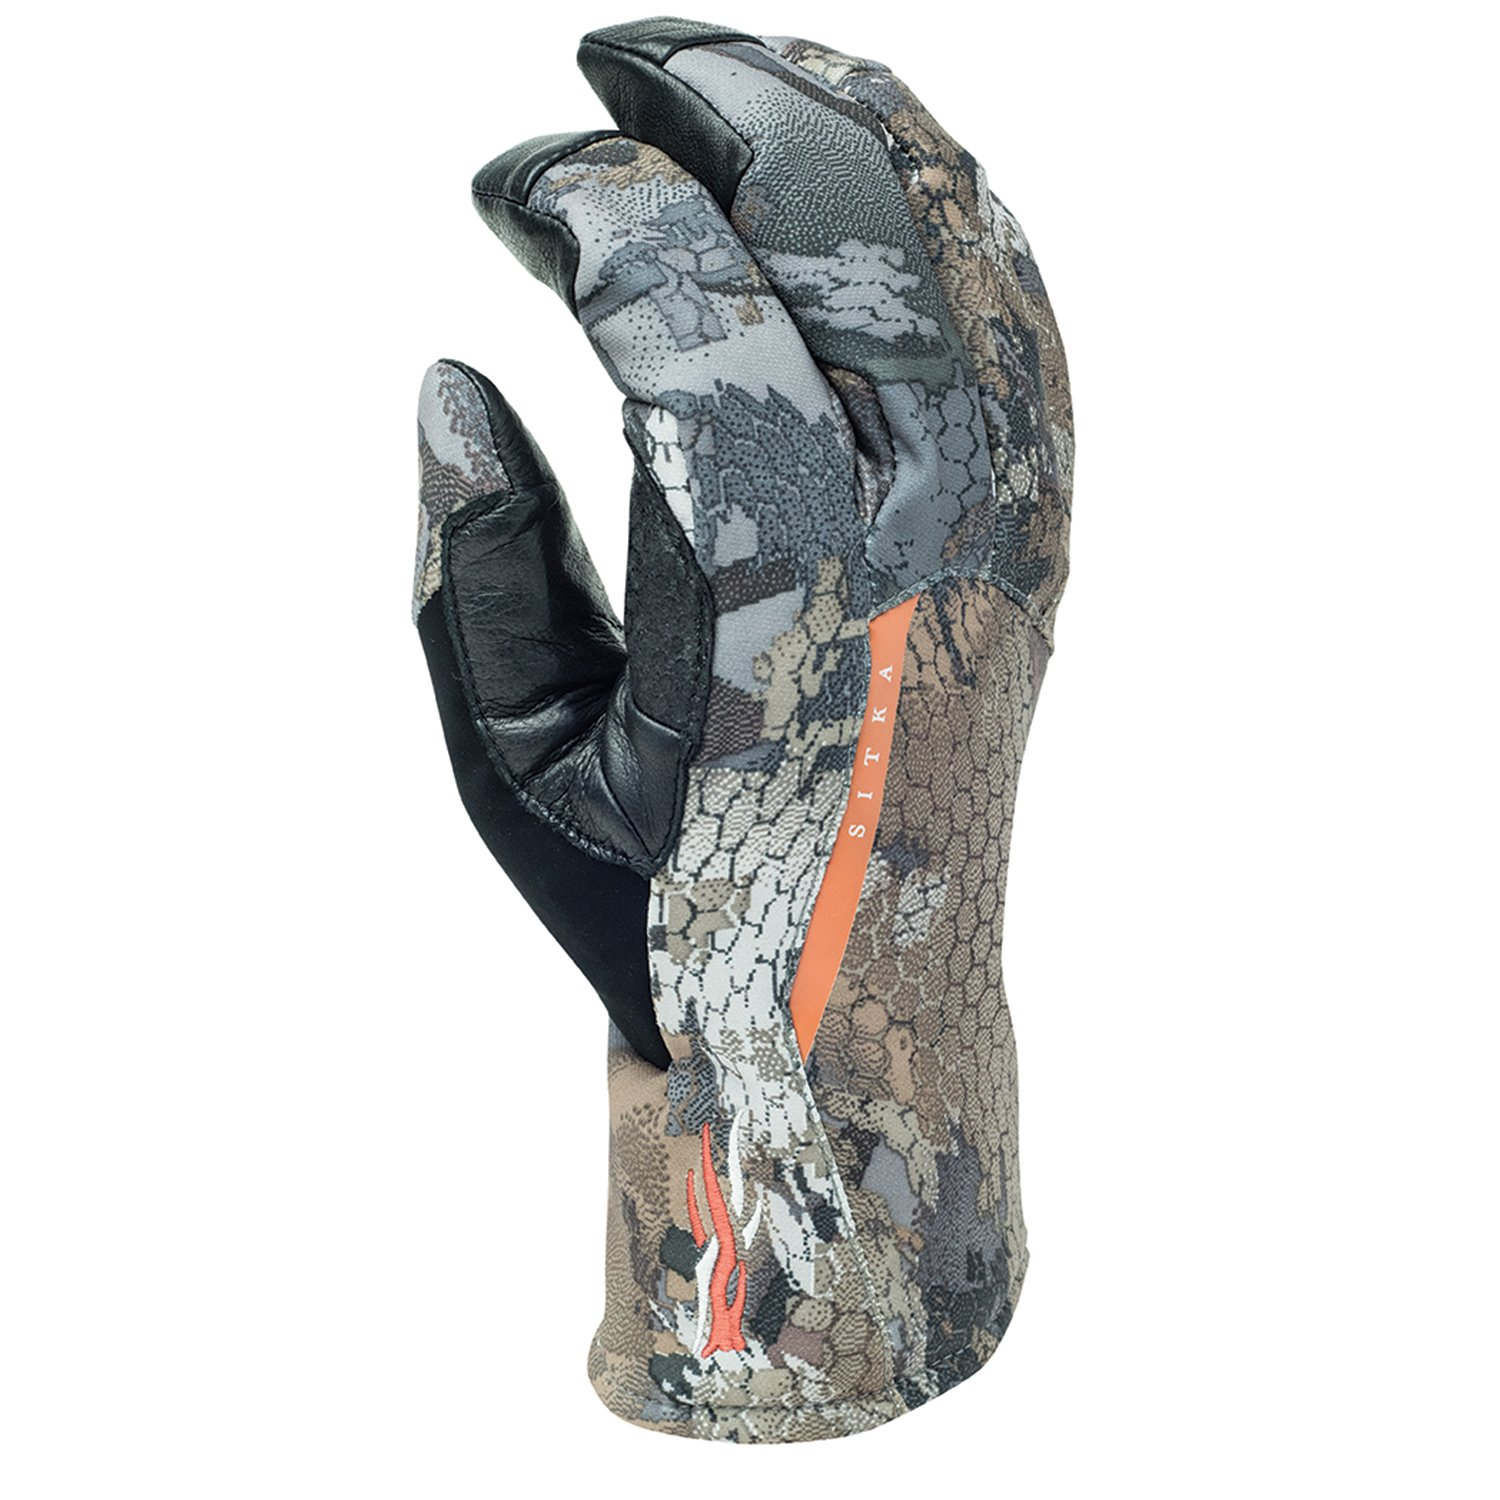 SITKA Gear Pantanal GTX Glove Optifade Timber Large